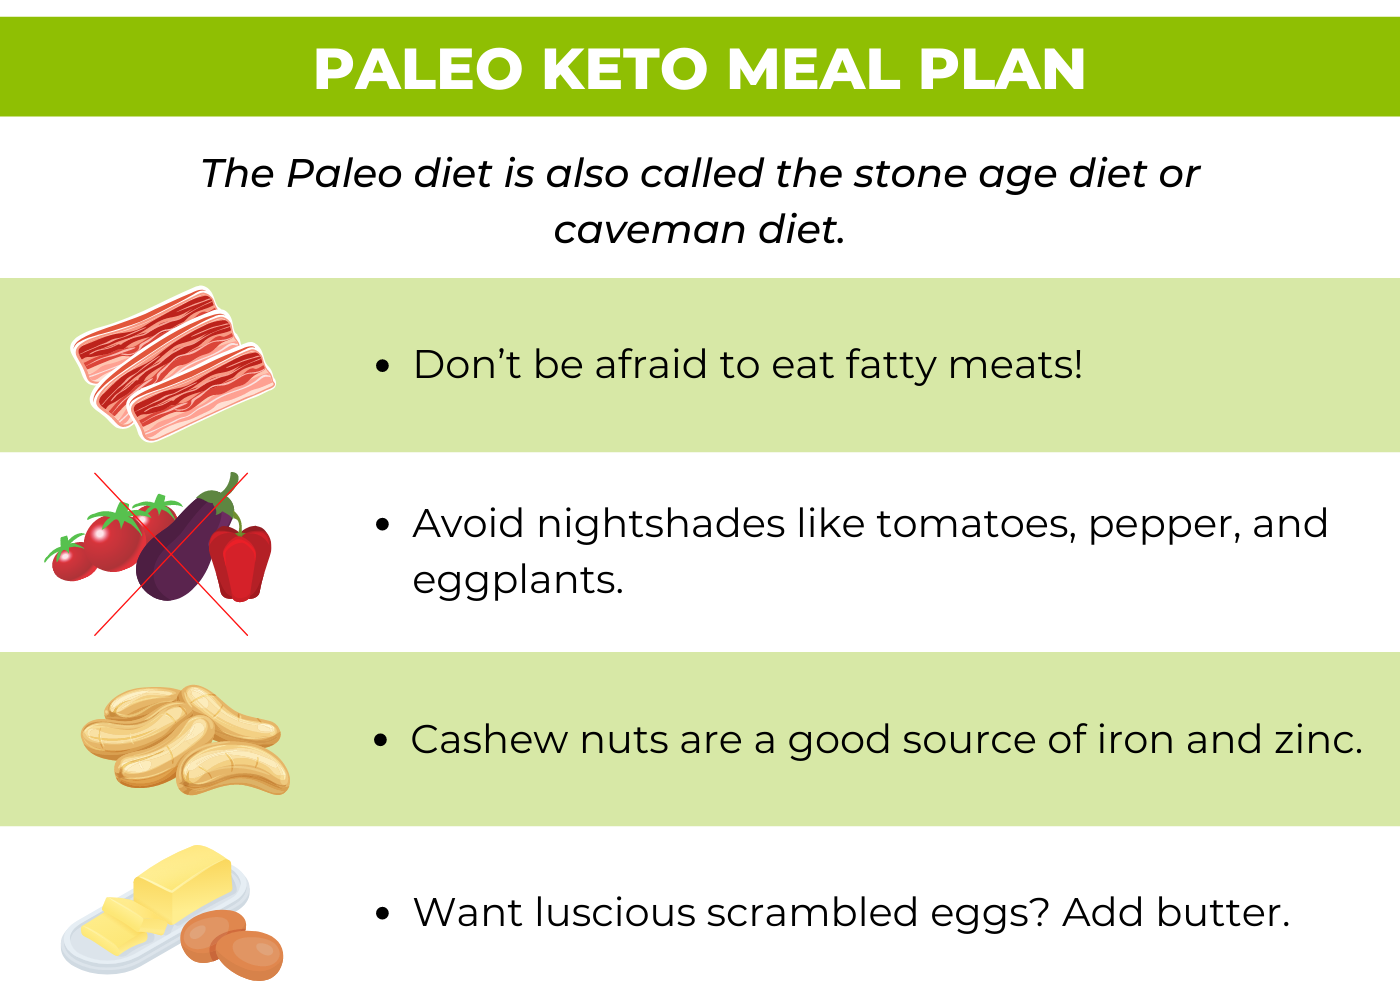 paleo keto meal plan infographic